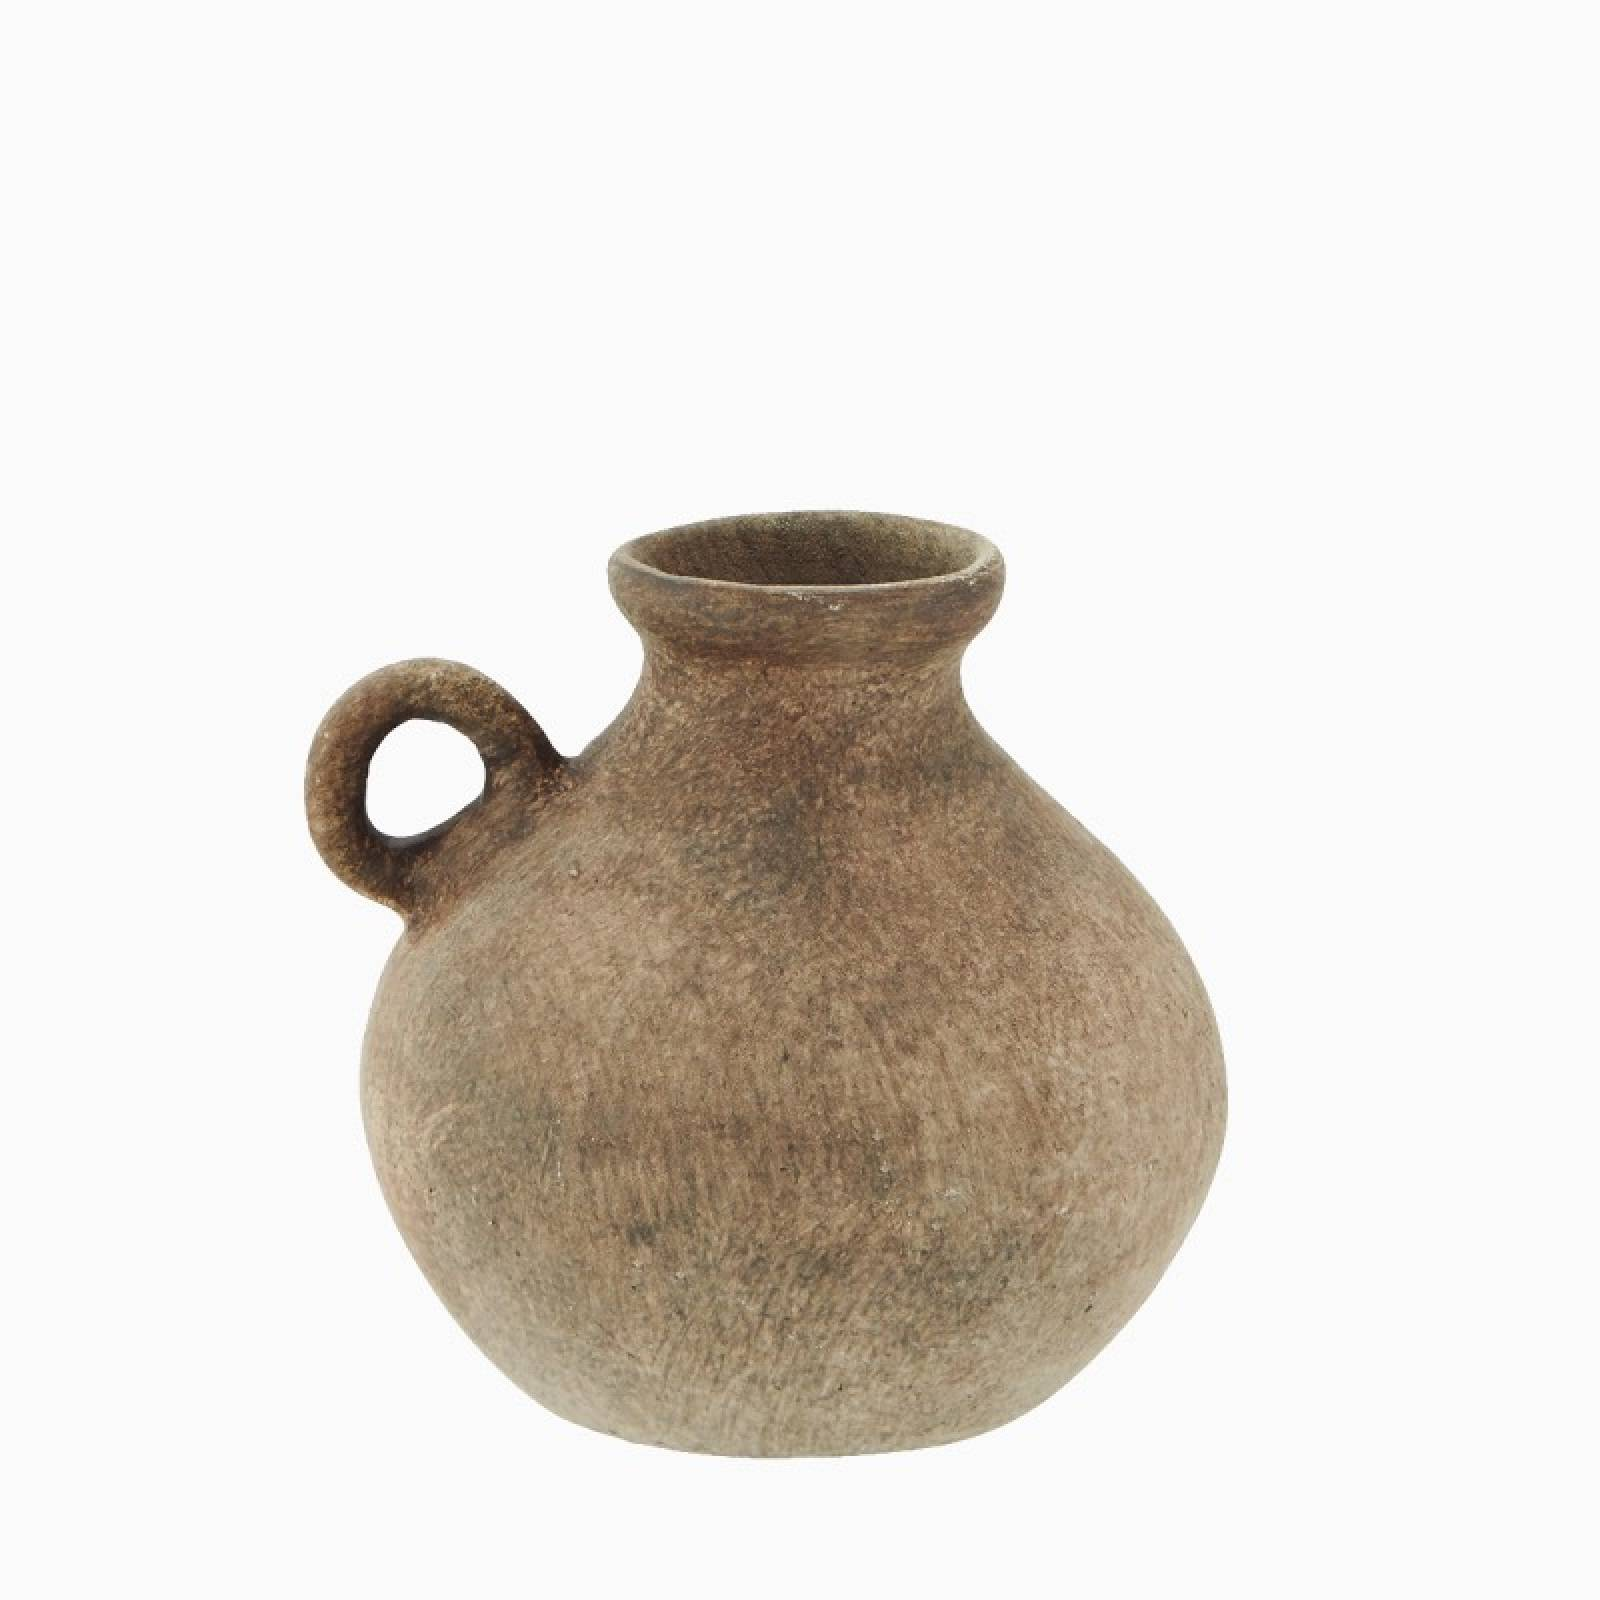 Small Terracotta Vase With Tiny Handle H:8cm